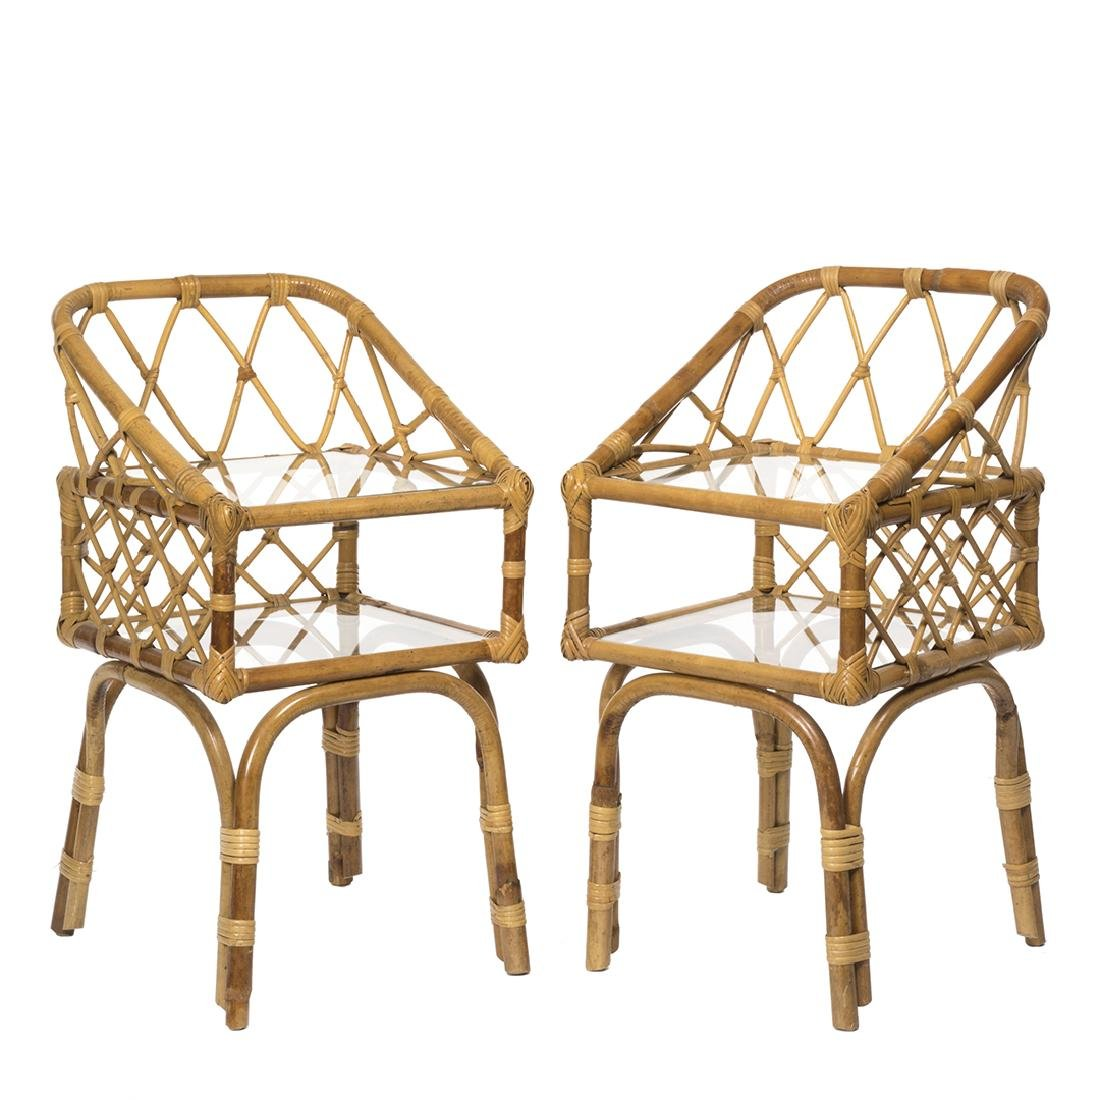 Rattan Side Tables (2)